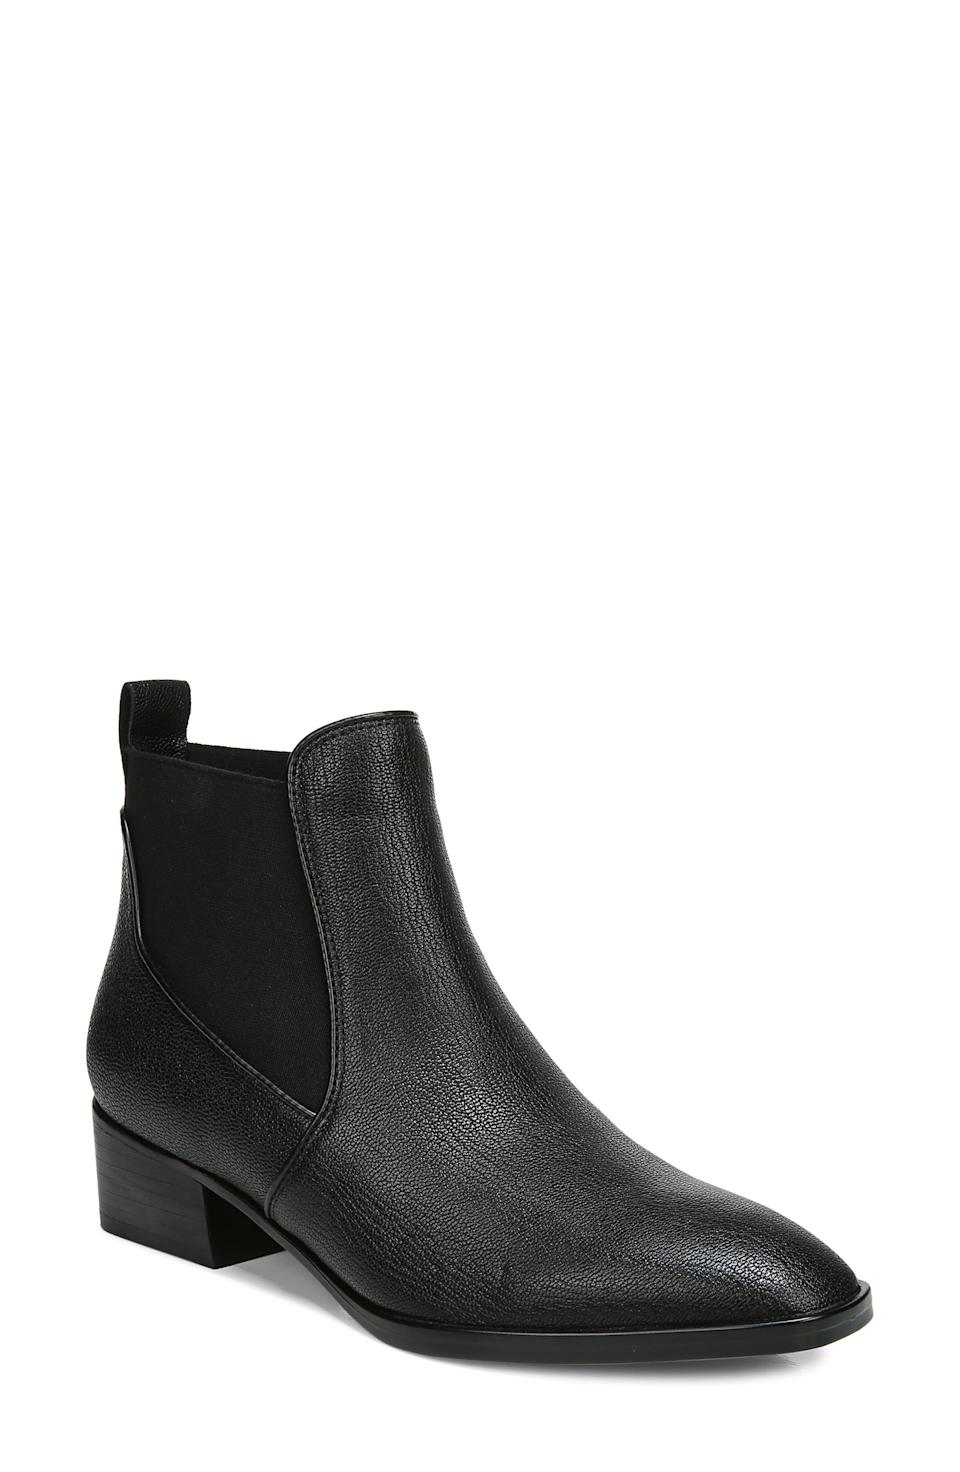 Naturalizer Hailey Chelsea Boot, .72 (was 5).